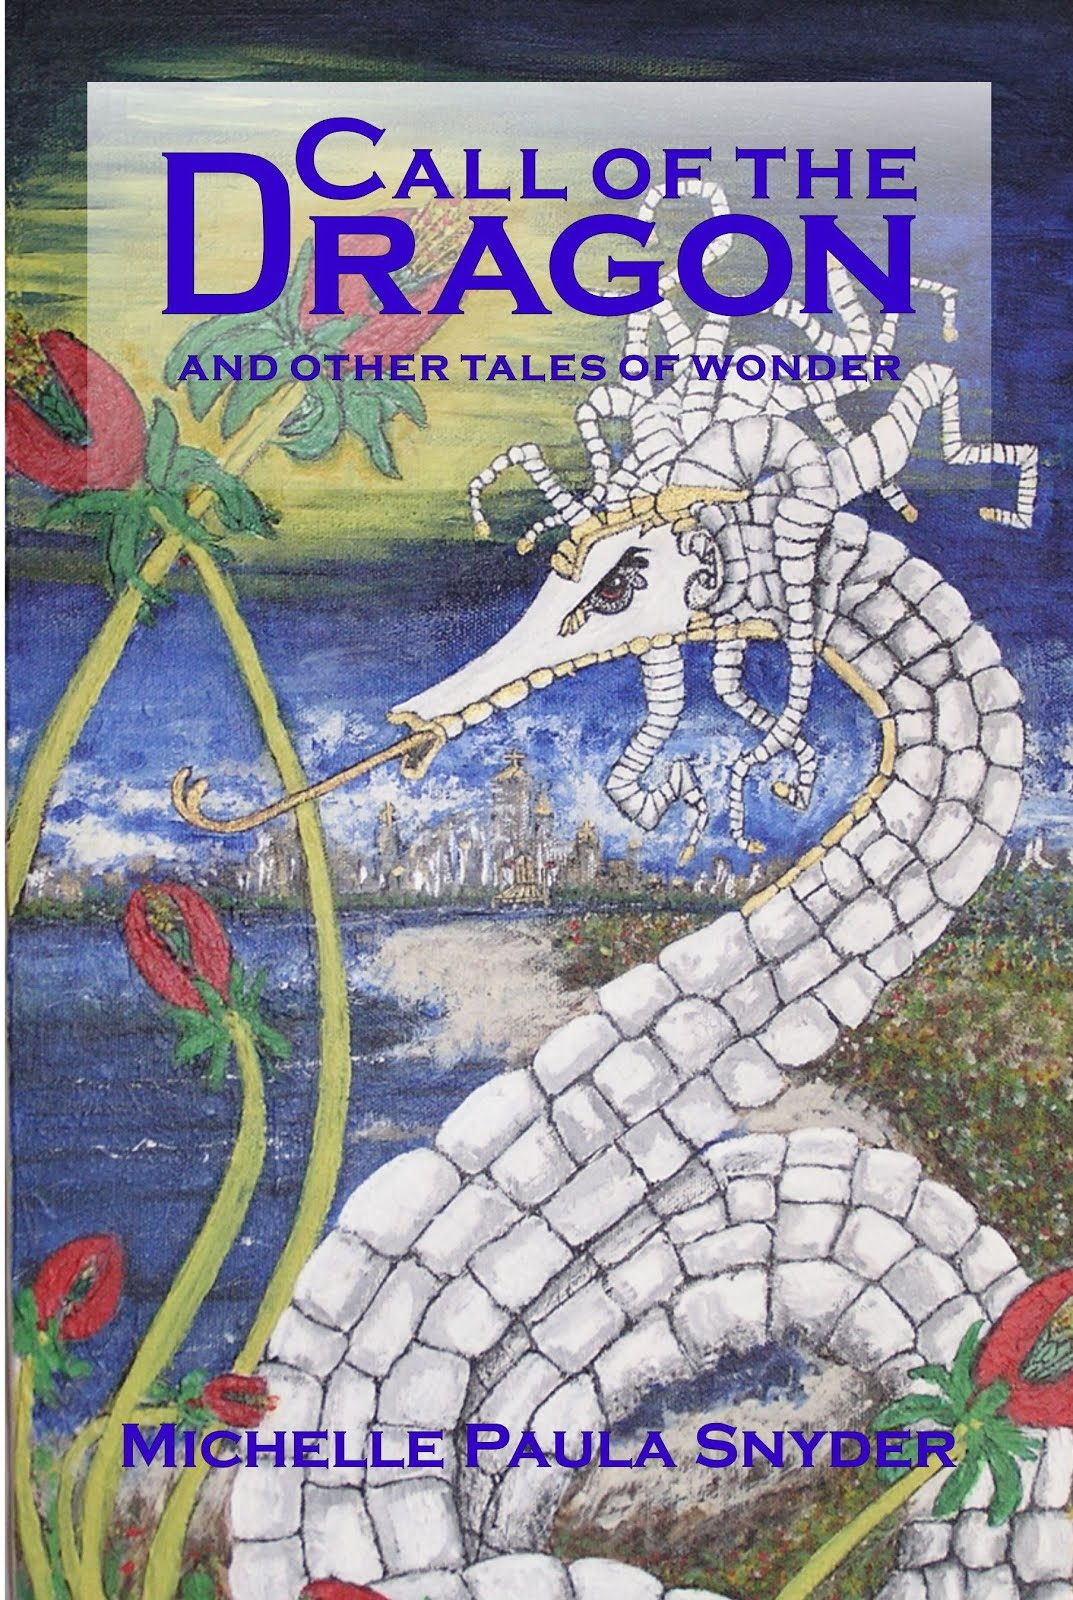 Call of the Dragon and Other Tales of Wonder